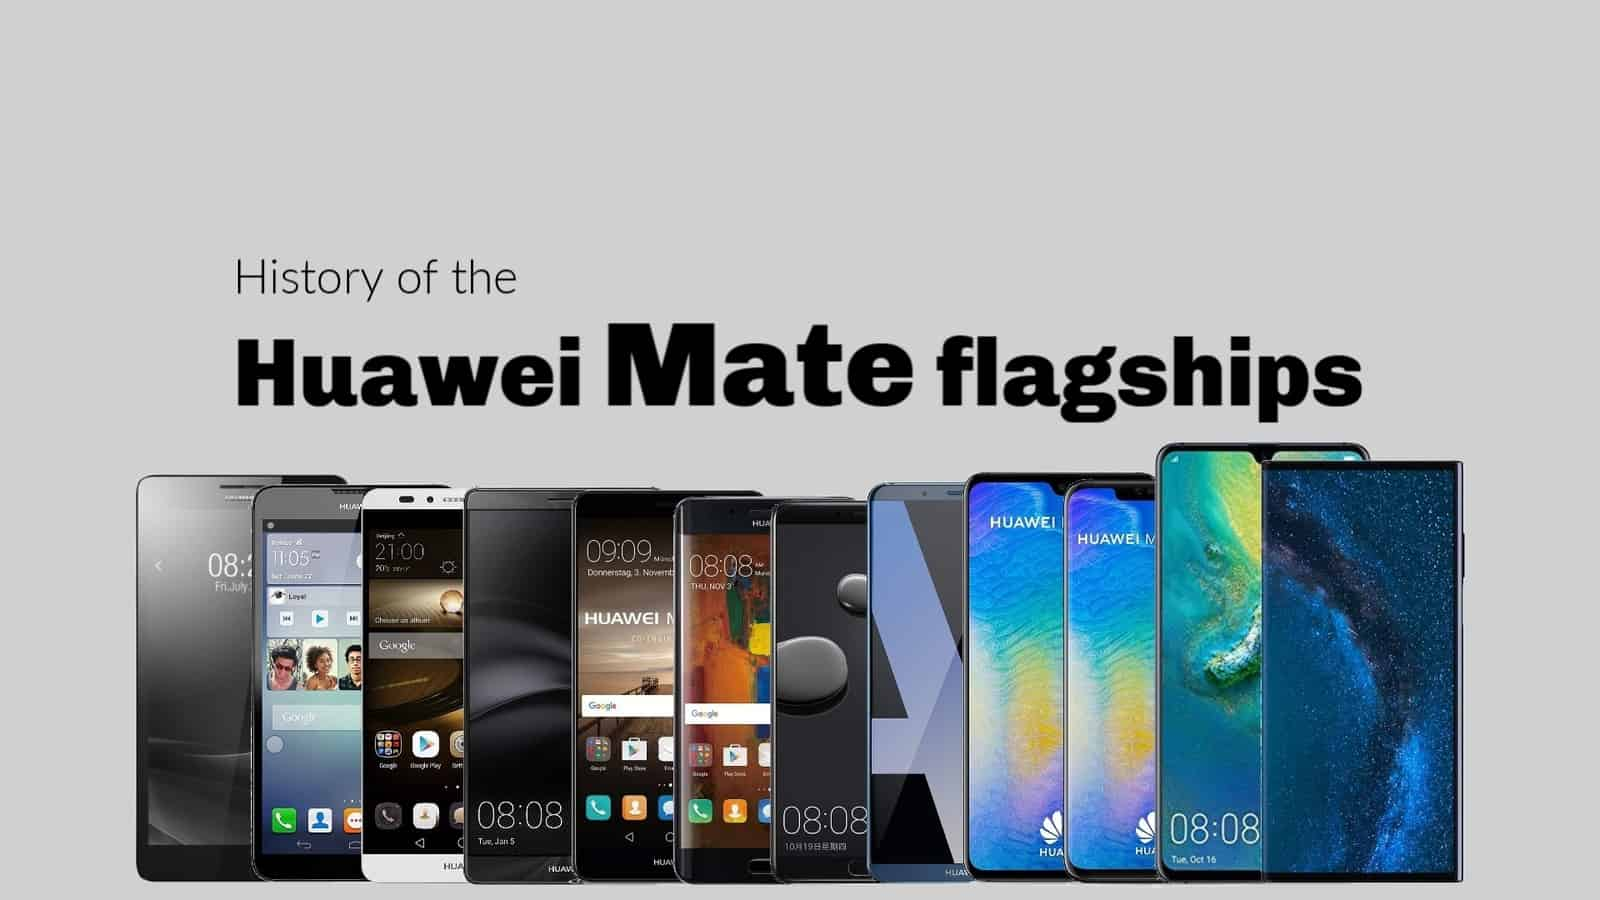 Huawei Mate flagships history final